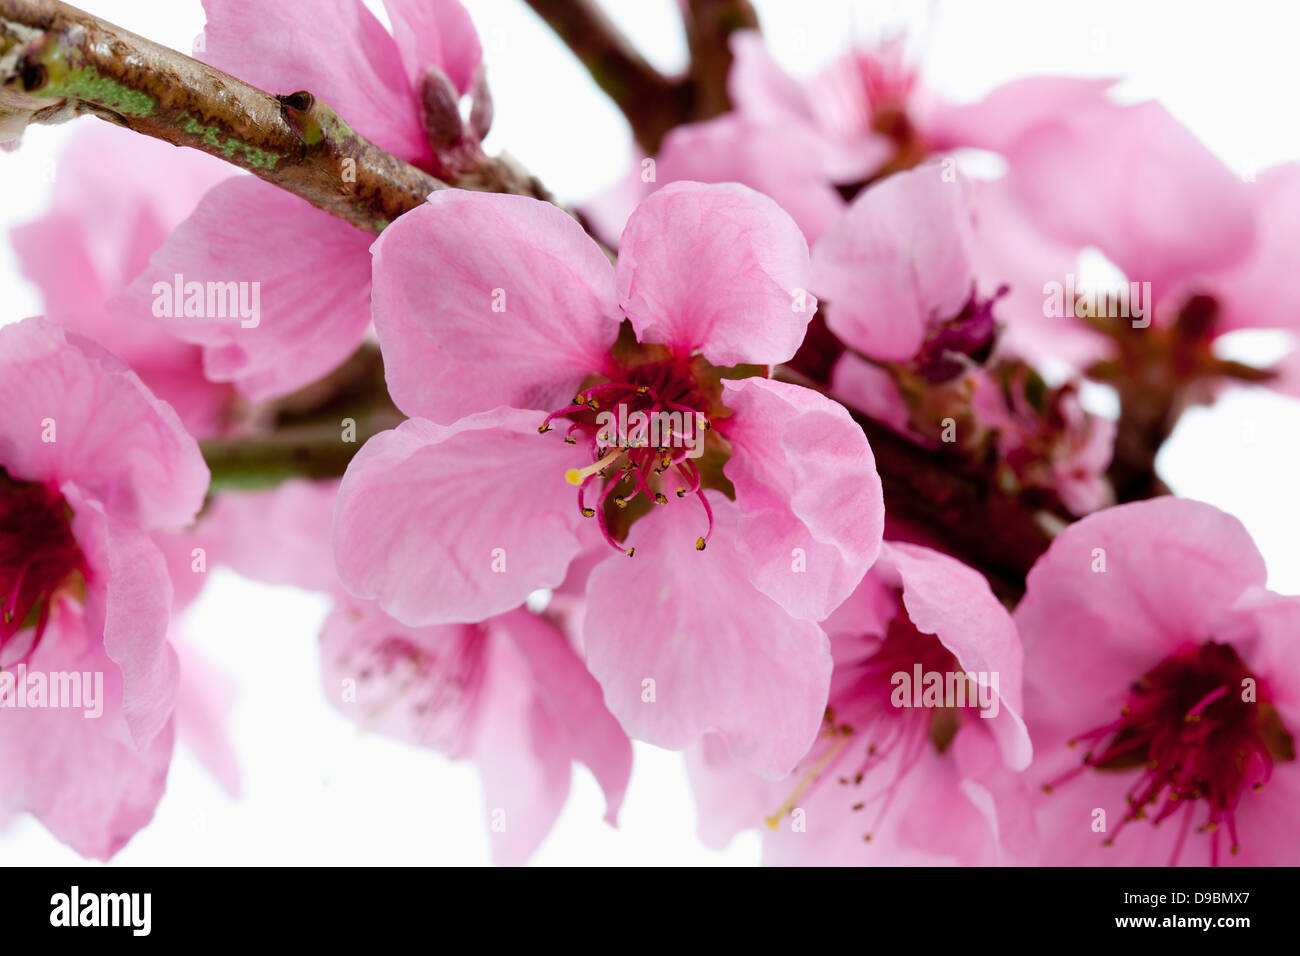 Peach Blossoms Against White Background Close Up